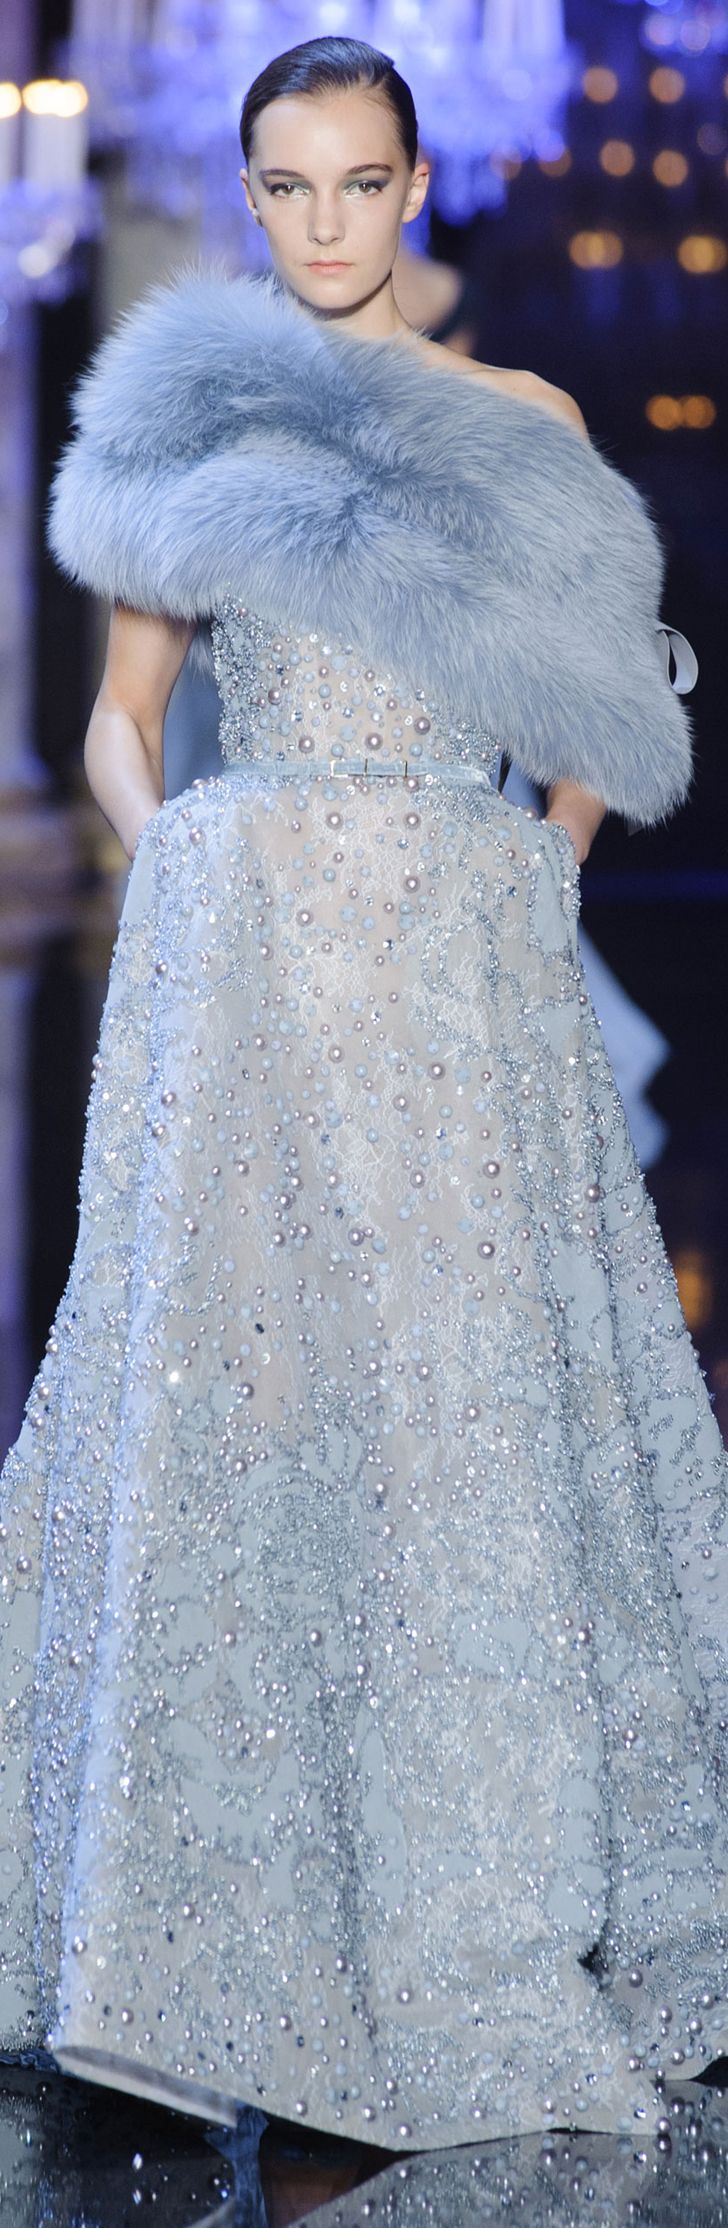 Stunning. Hope not real fur, though! Elie Saab Haute Couture Fall 2014 GORGEOUS